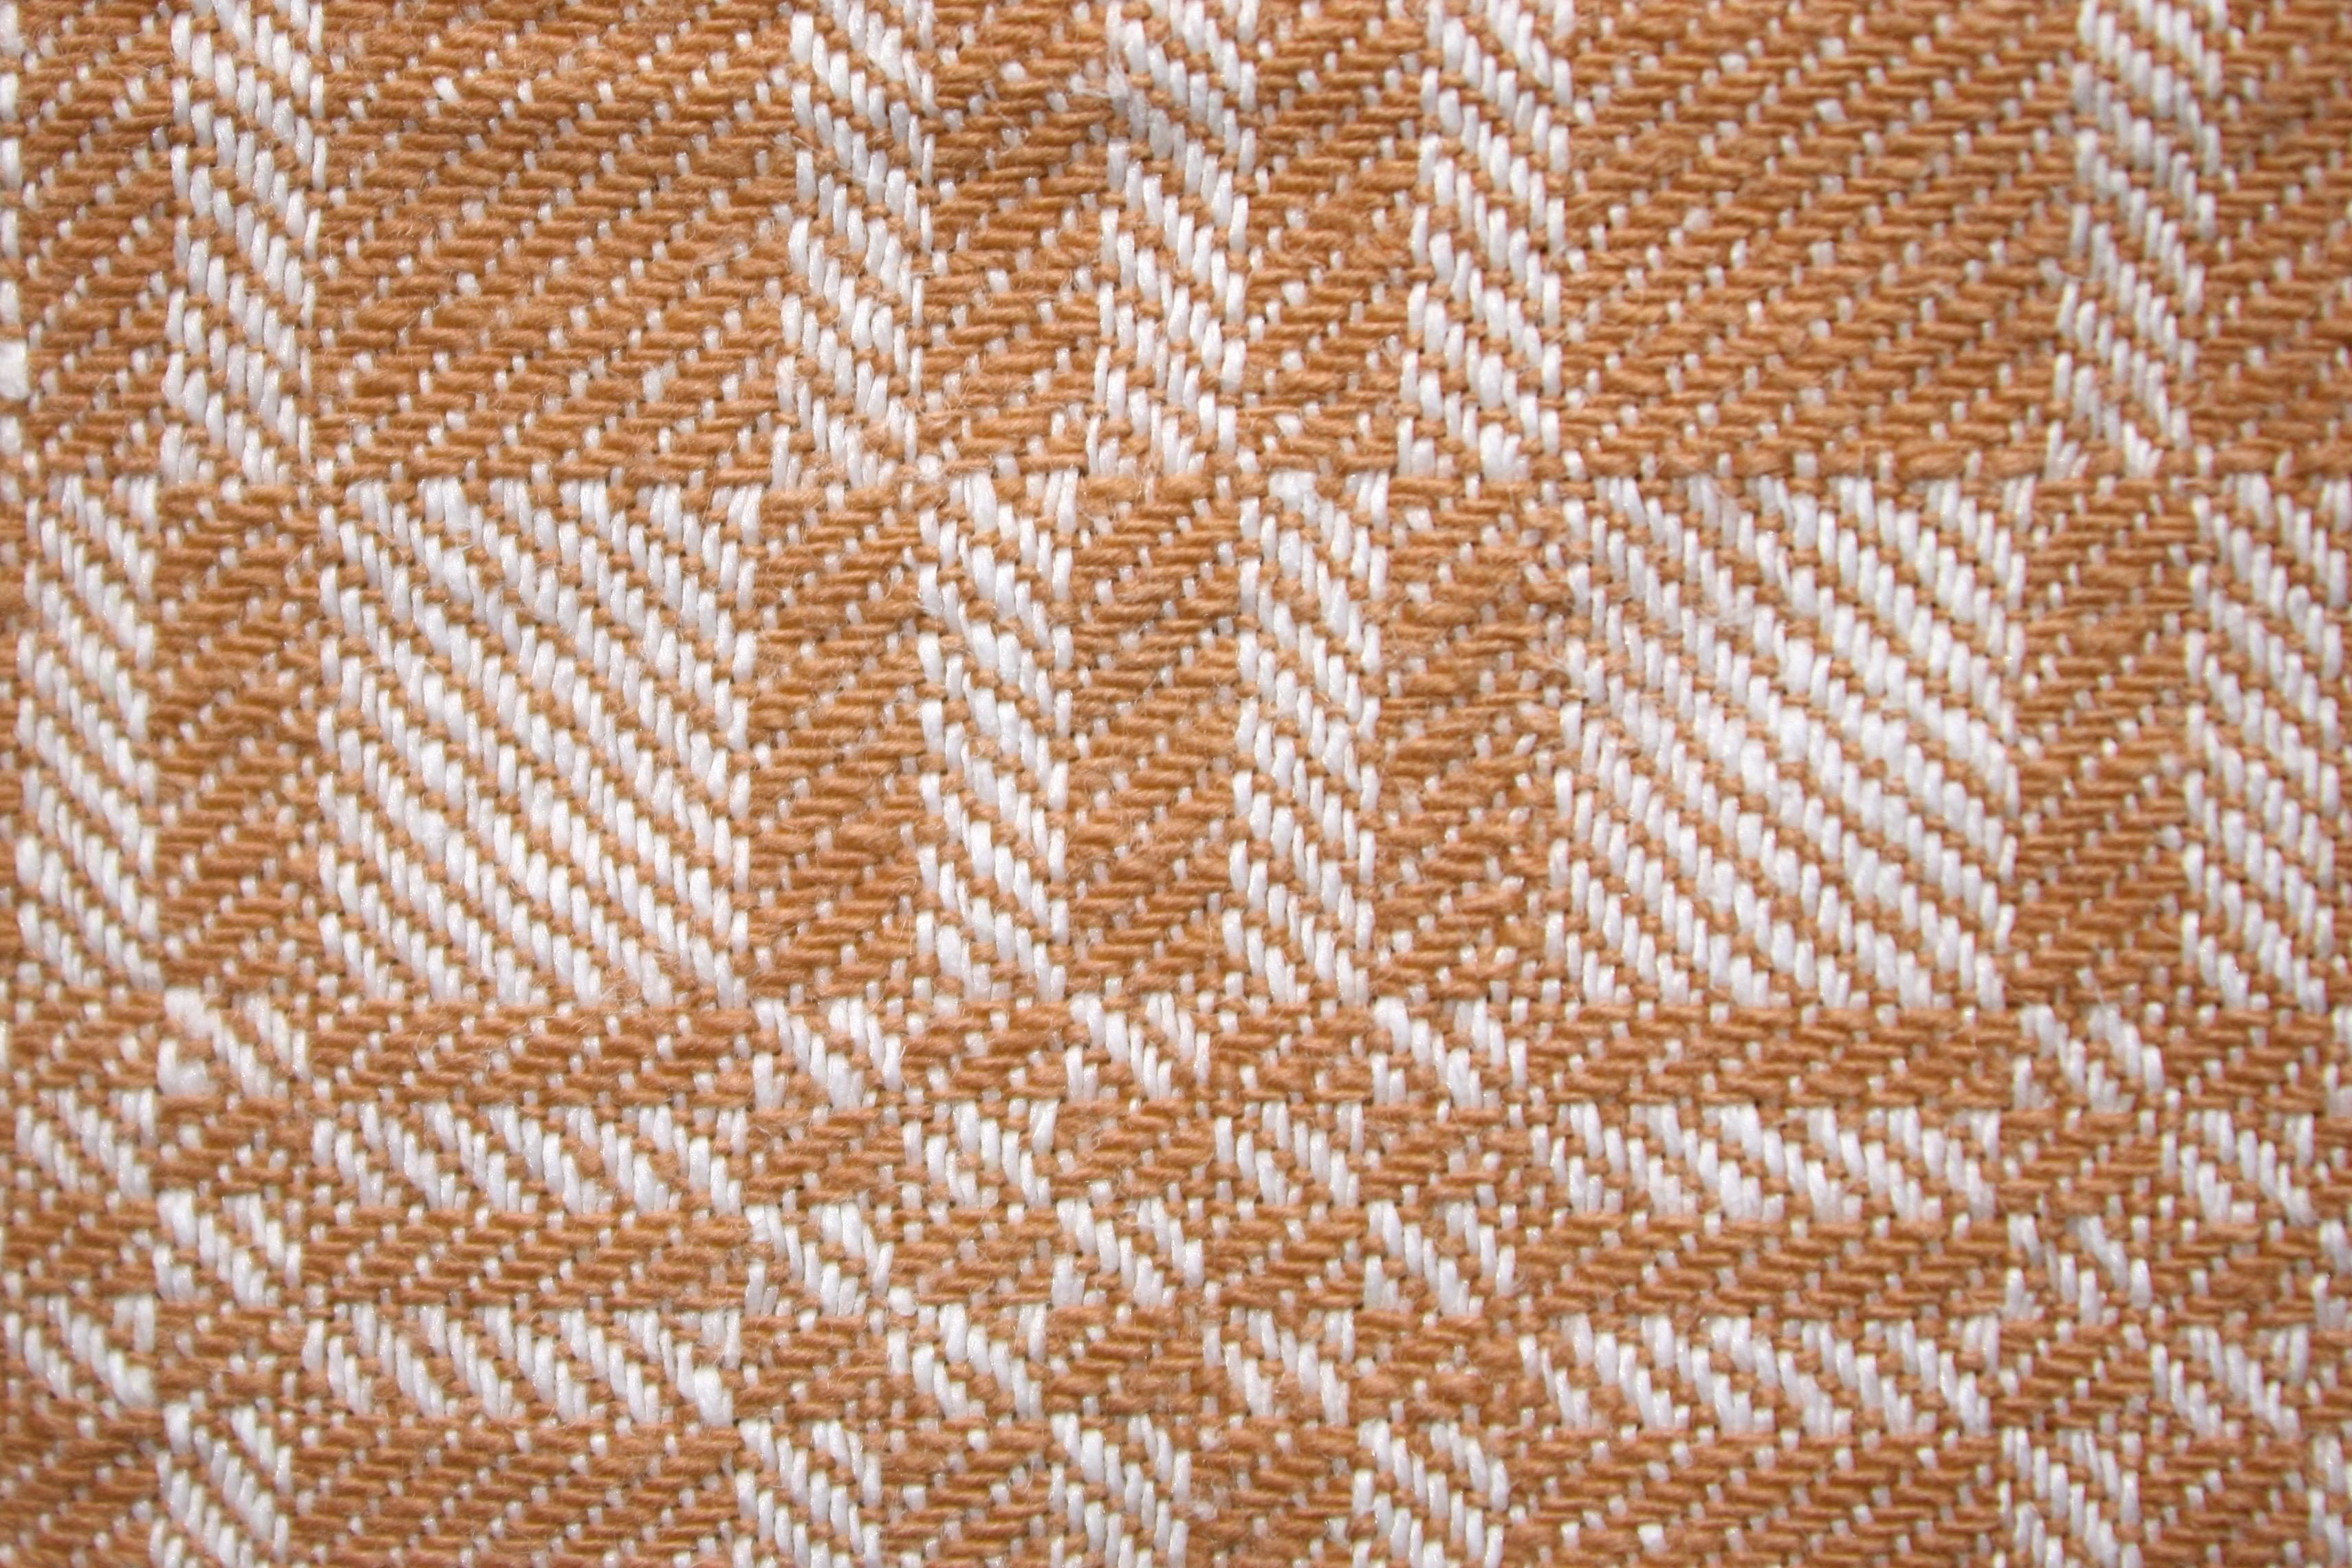 Free picture: textil, brown, white, woven fabric, texture, square ... for White Woven Fabric Texture  568zmd